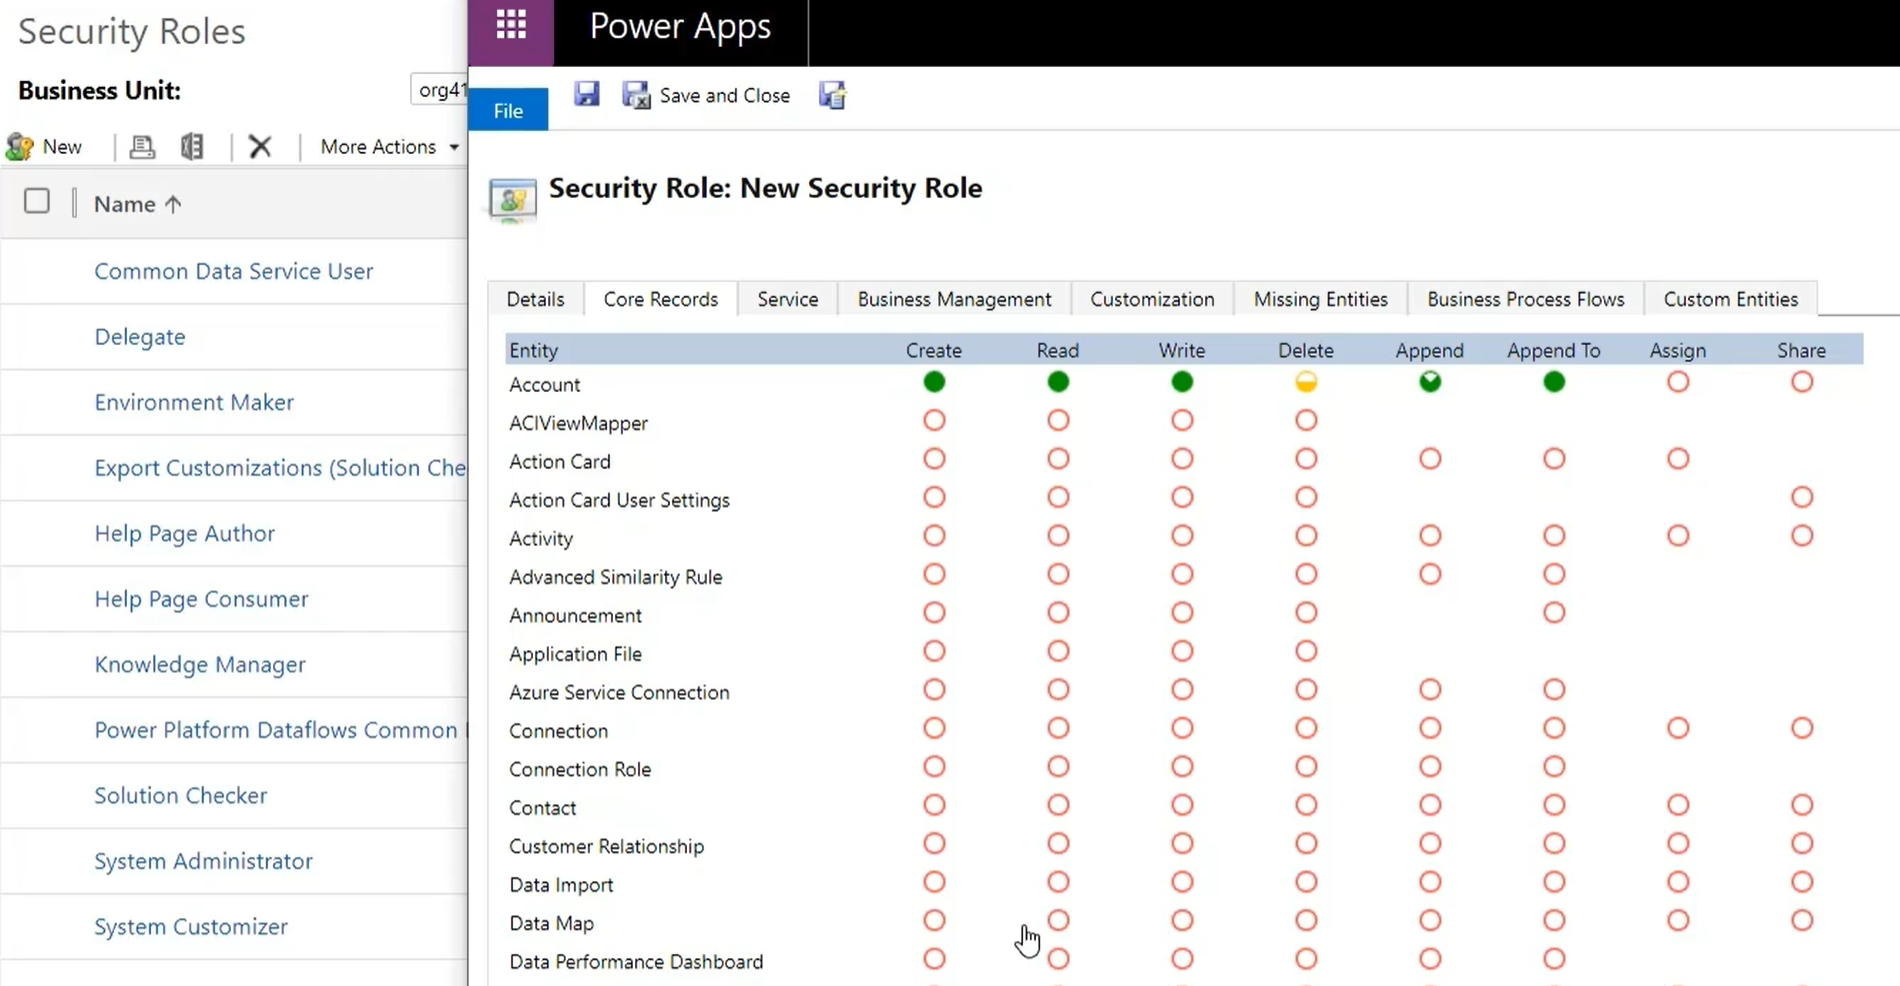 Power Apps Admin Center Security Roles